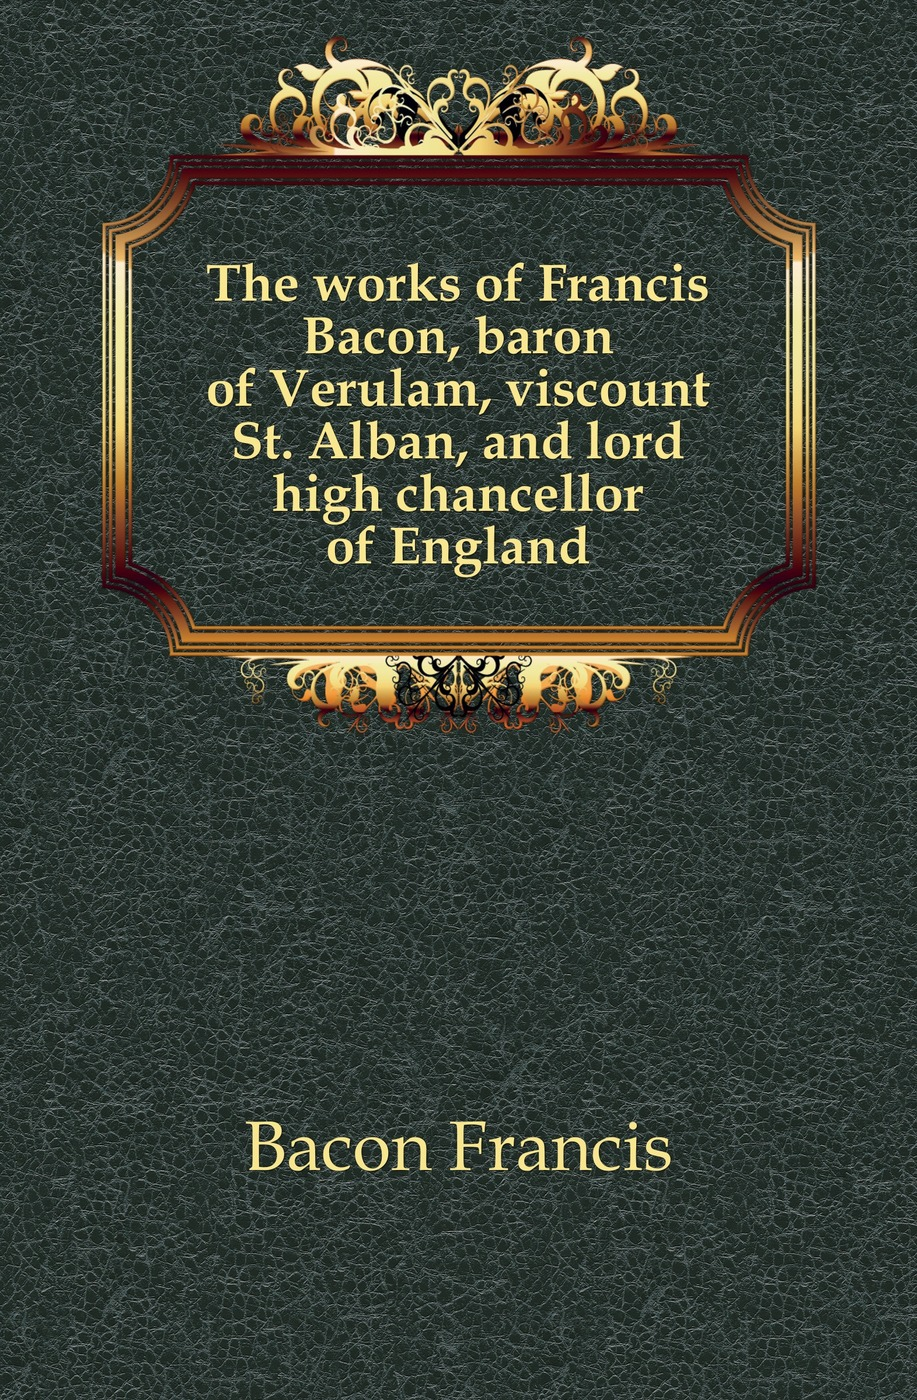 Фрэнсис Бэкон The works of Francis Bacon, baron of Verulam, viscount St. Alban, and lord high chancellor of England фрэнсис бэкон the works of francis bacon volume 11